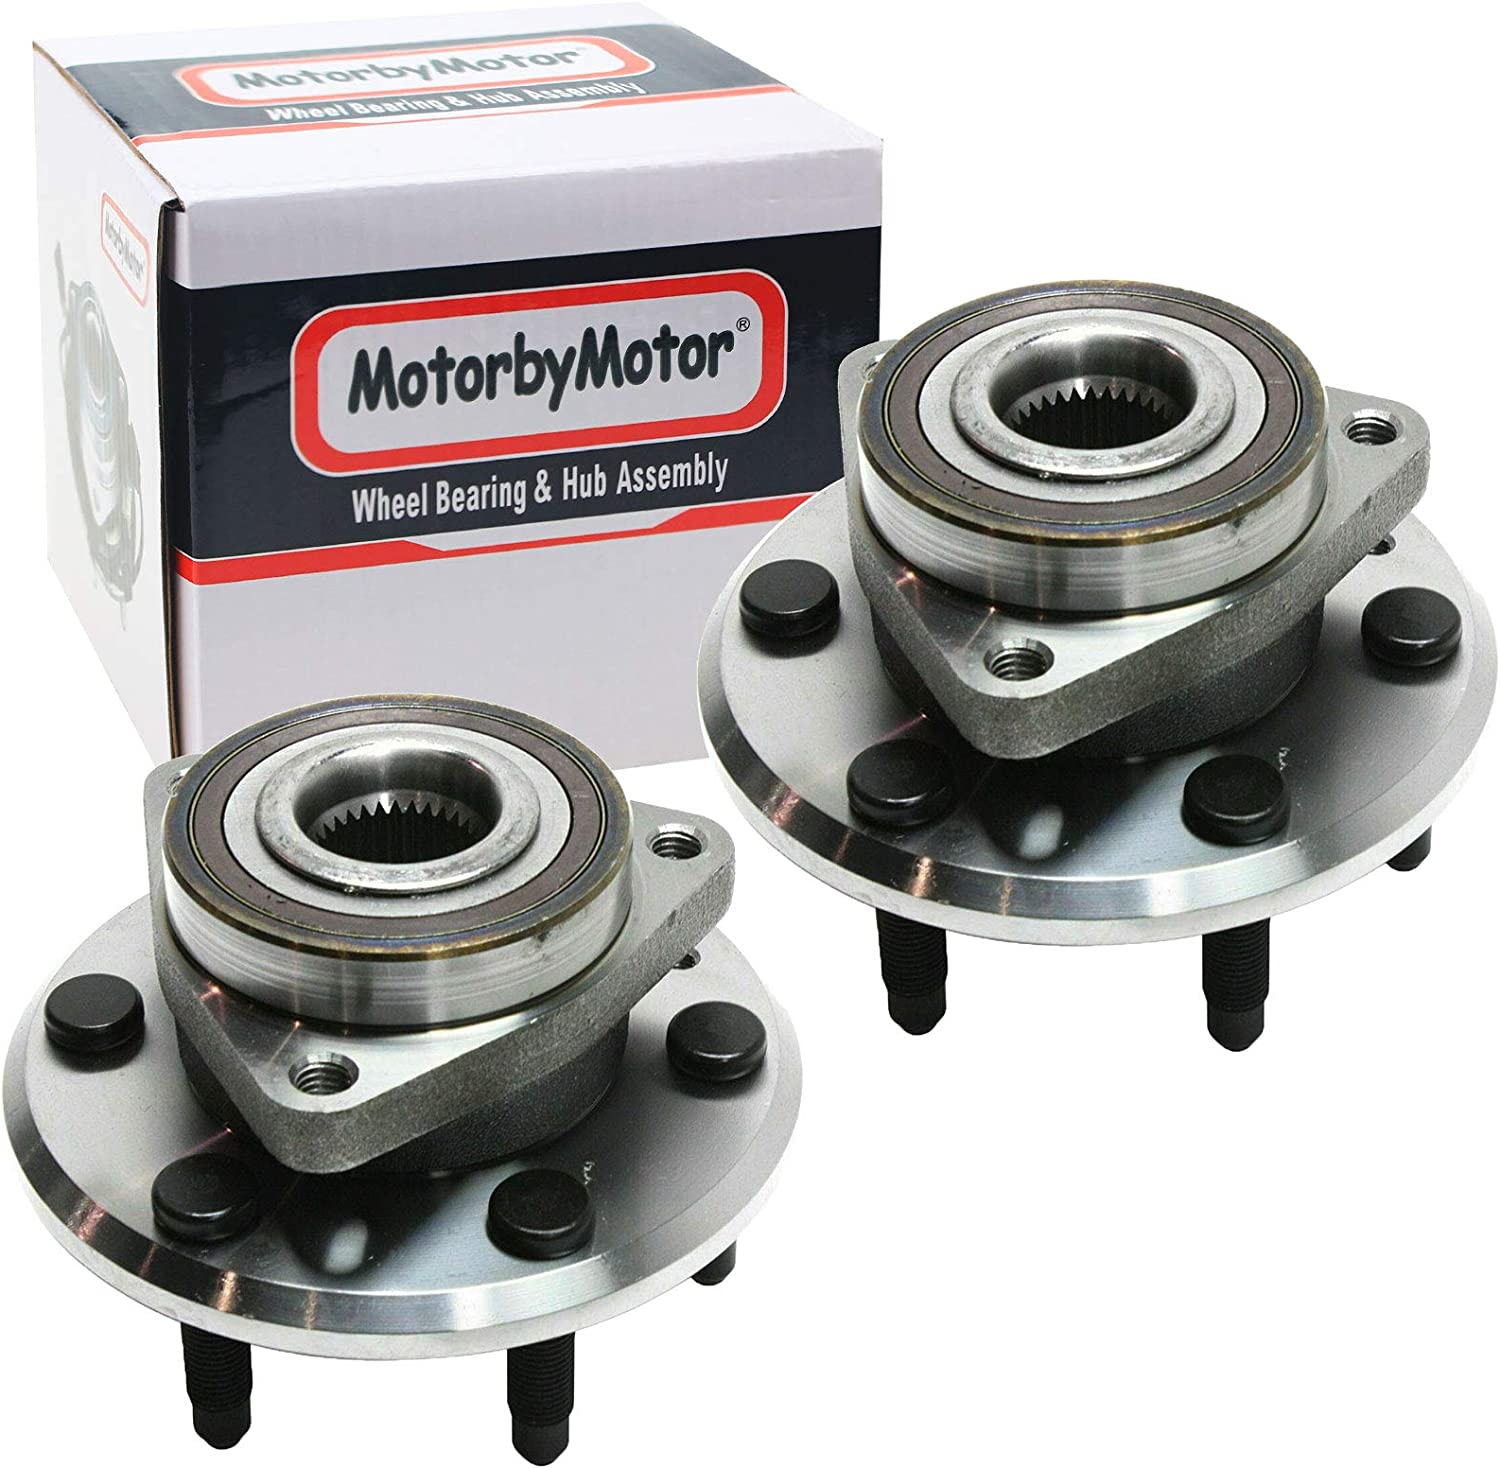 MotorbyMotor 513277 Front Rear Wheel Bearing Assembly Hub Fits We OFFer at cheap prices f supreme